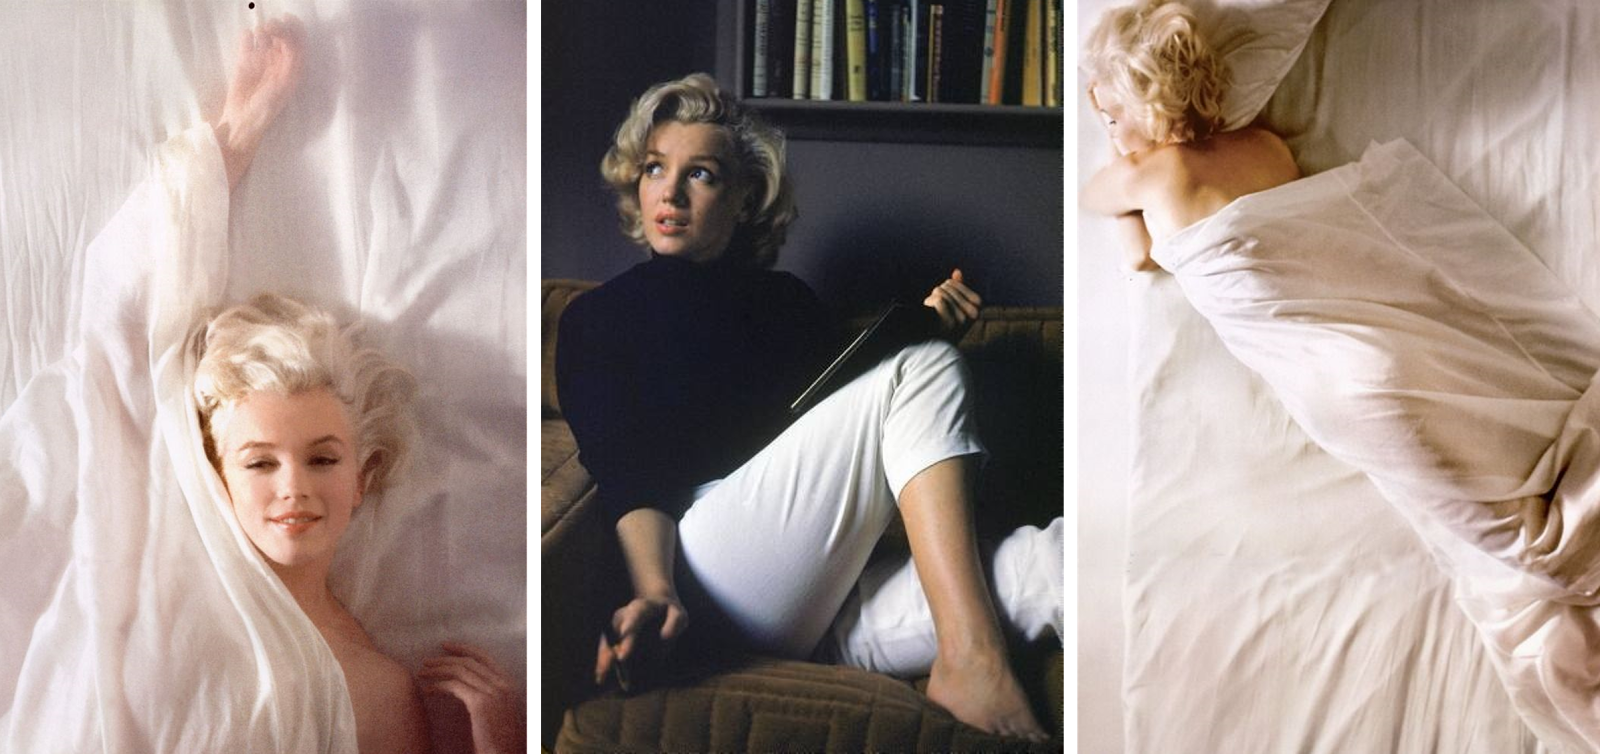 Pictures of Marilyn Monroe in bed and reading.